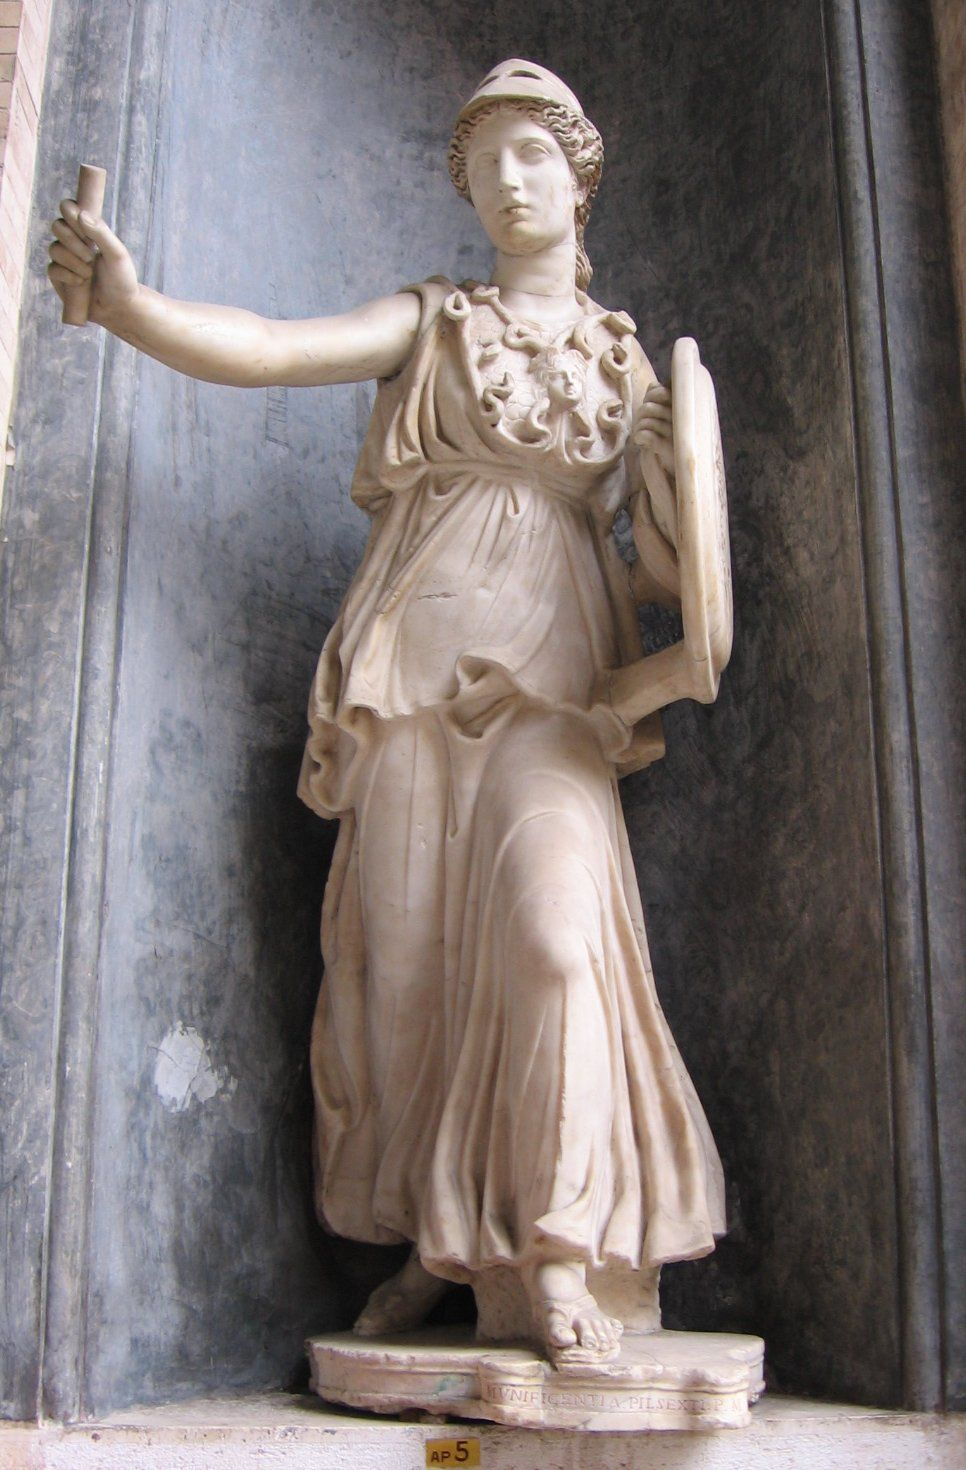 the goddess athena Google Search Vatican art, Ancient